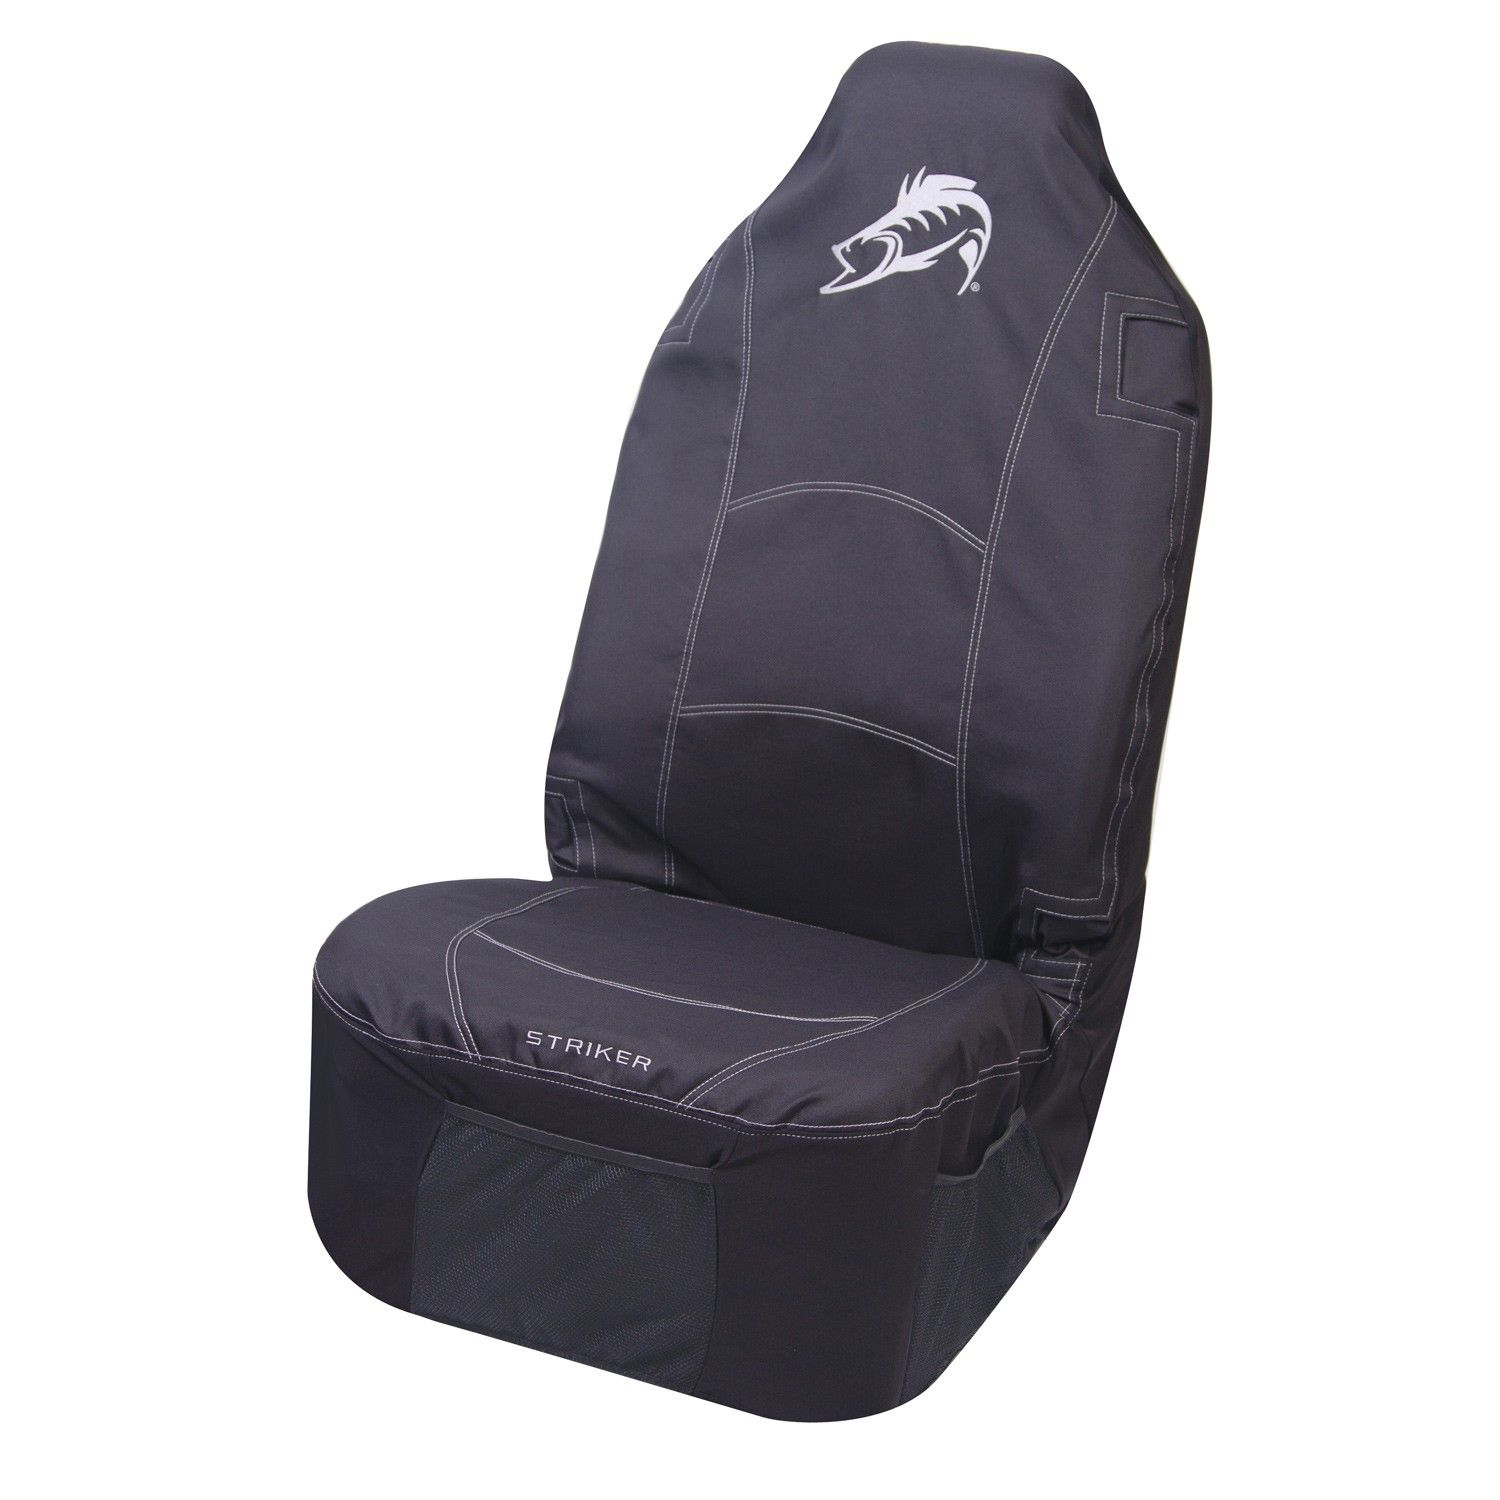 Fabulous Striker Fish Theme Universal Seat Cover Truck Accessories Alphanode Cool Chair Designs And Ideas Alphanodeonline